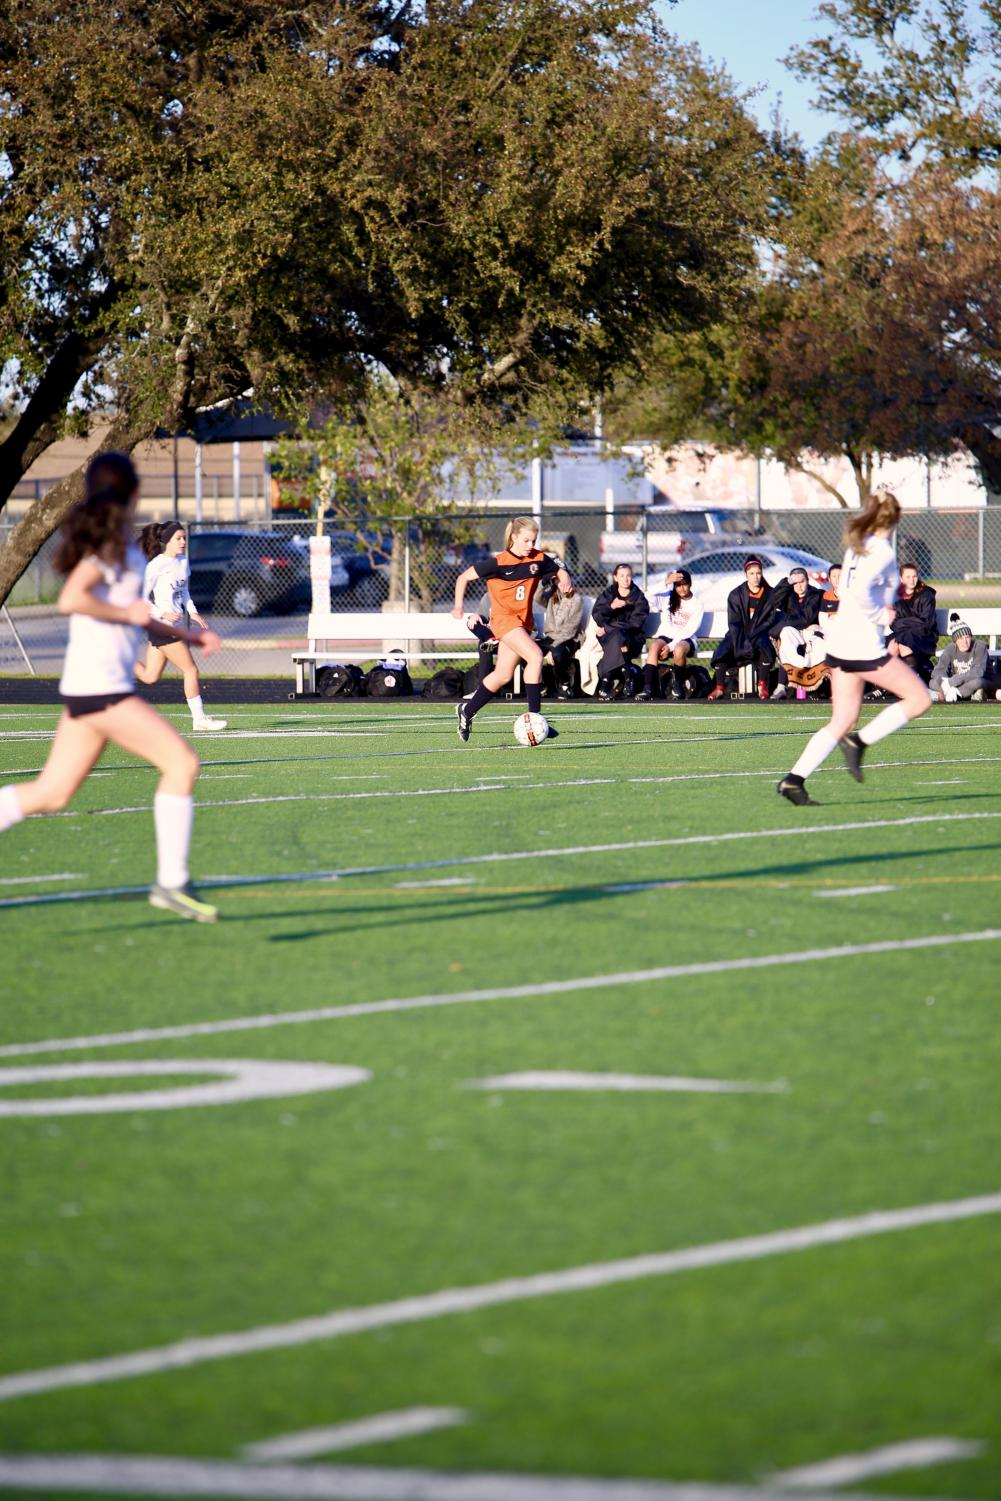 Katelyn+Woodruff+%2721+dribbles+the+ball+downfield%2C+surrounded+by+opponents.